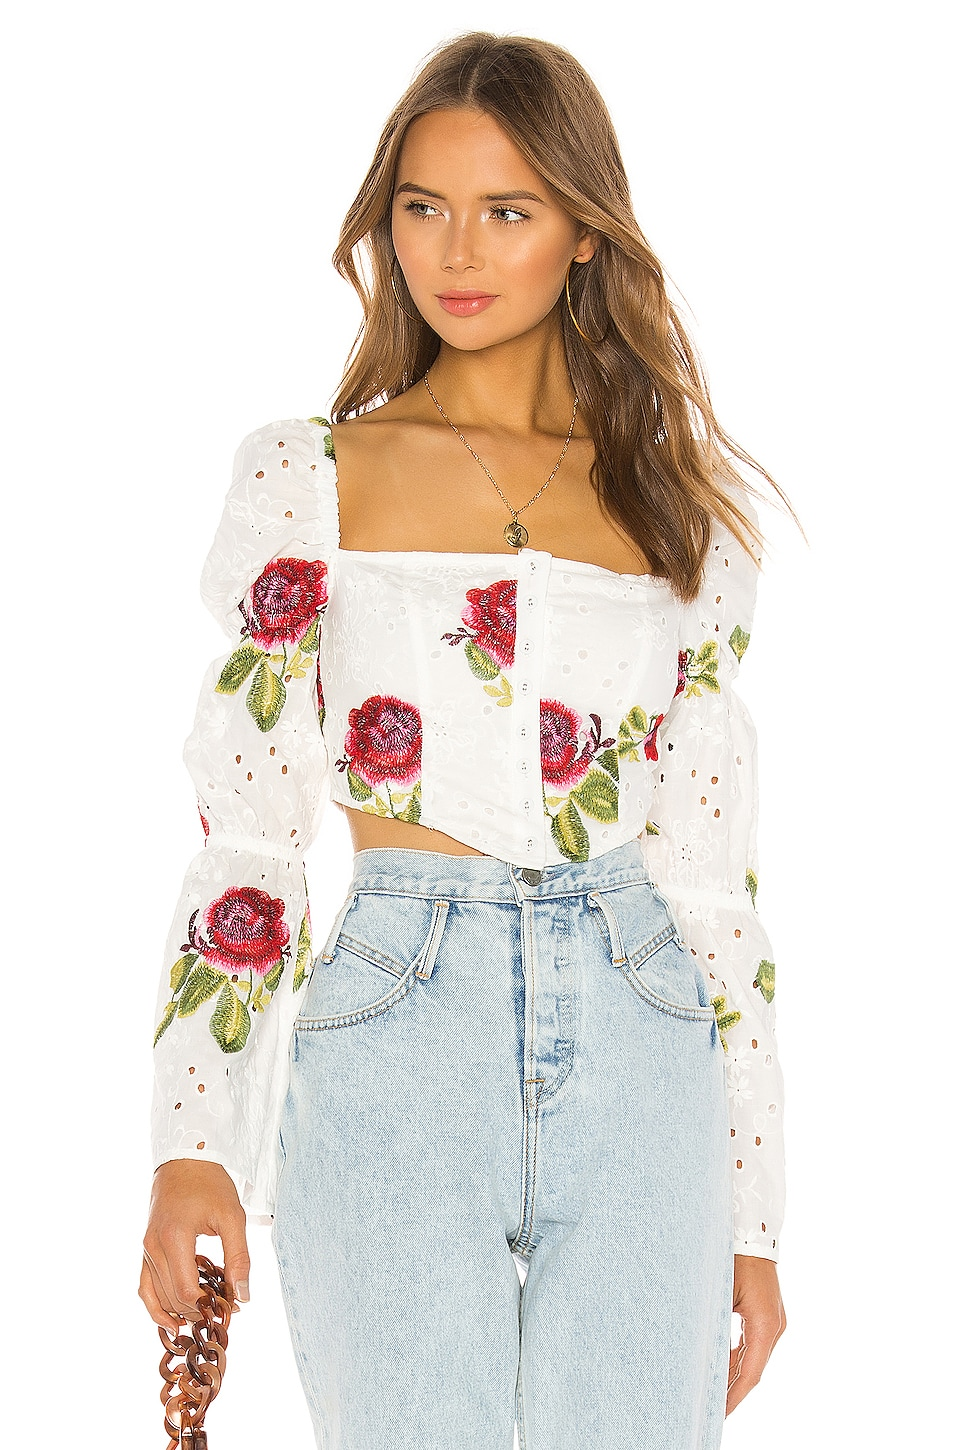 MAJORELLE Finley Top in White & Pink